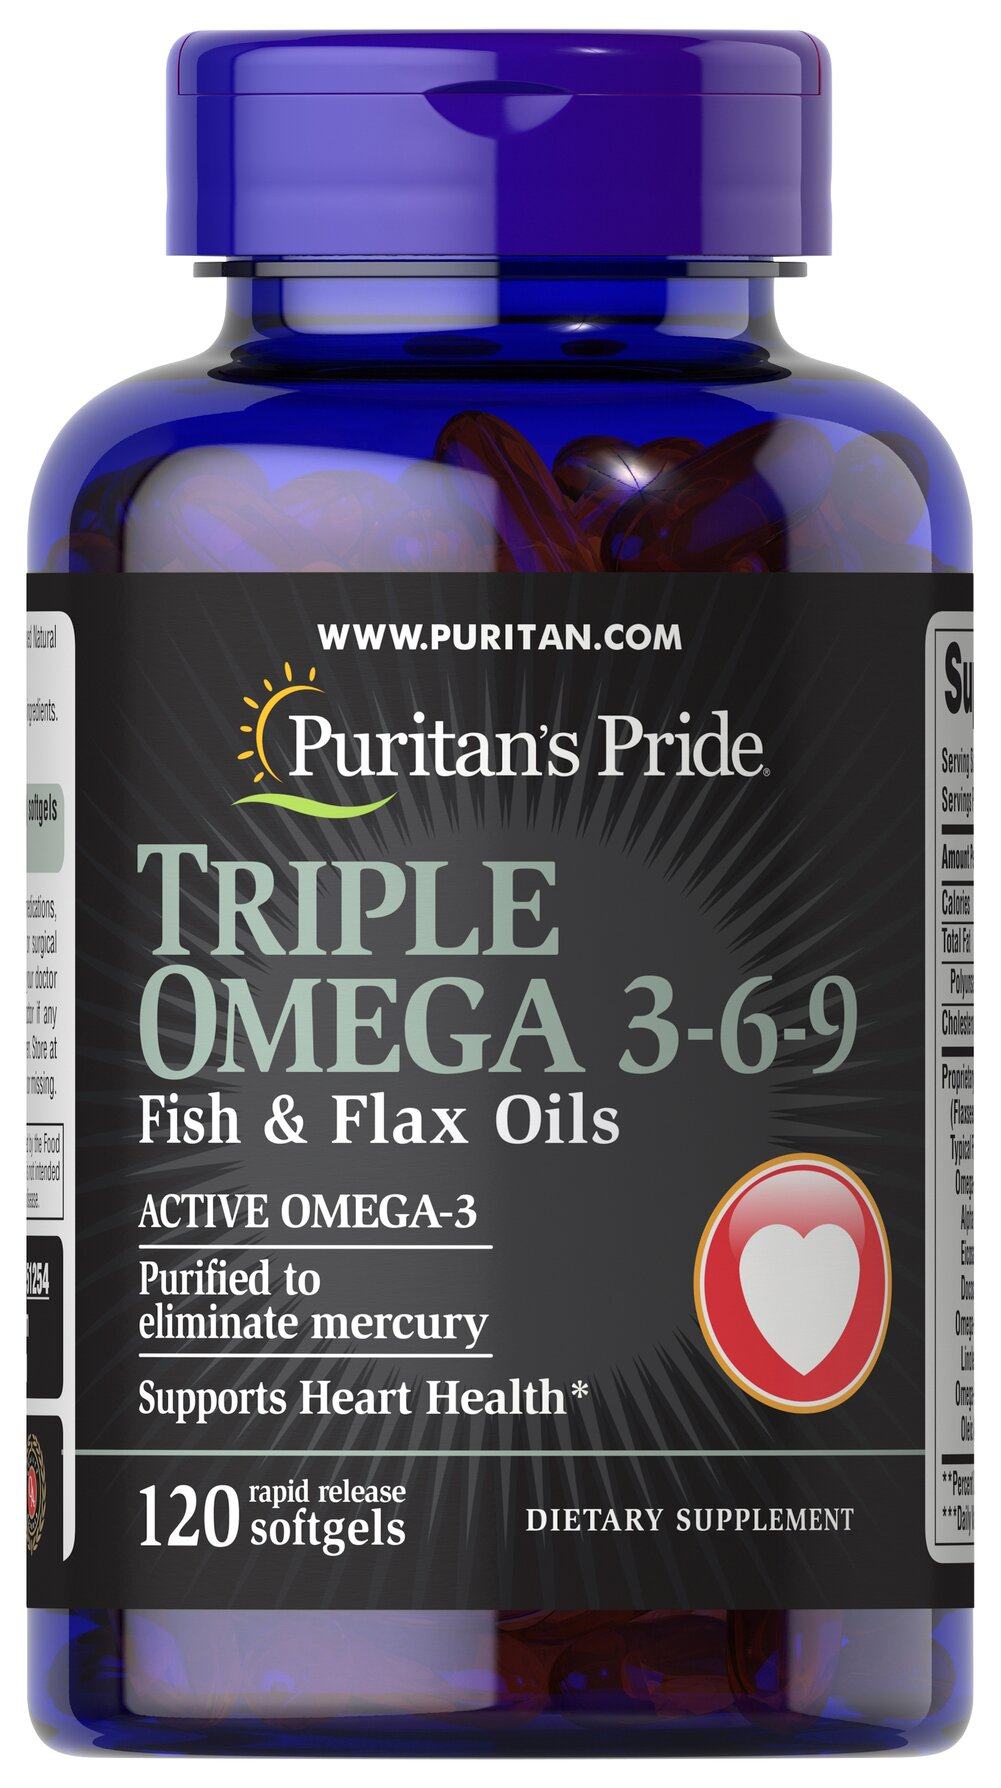 Triple Omega 3-6-9 Fish & Flax Oils  120 Softgels  $19.19